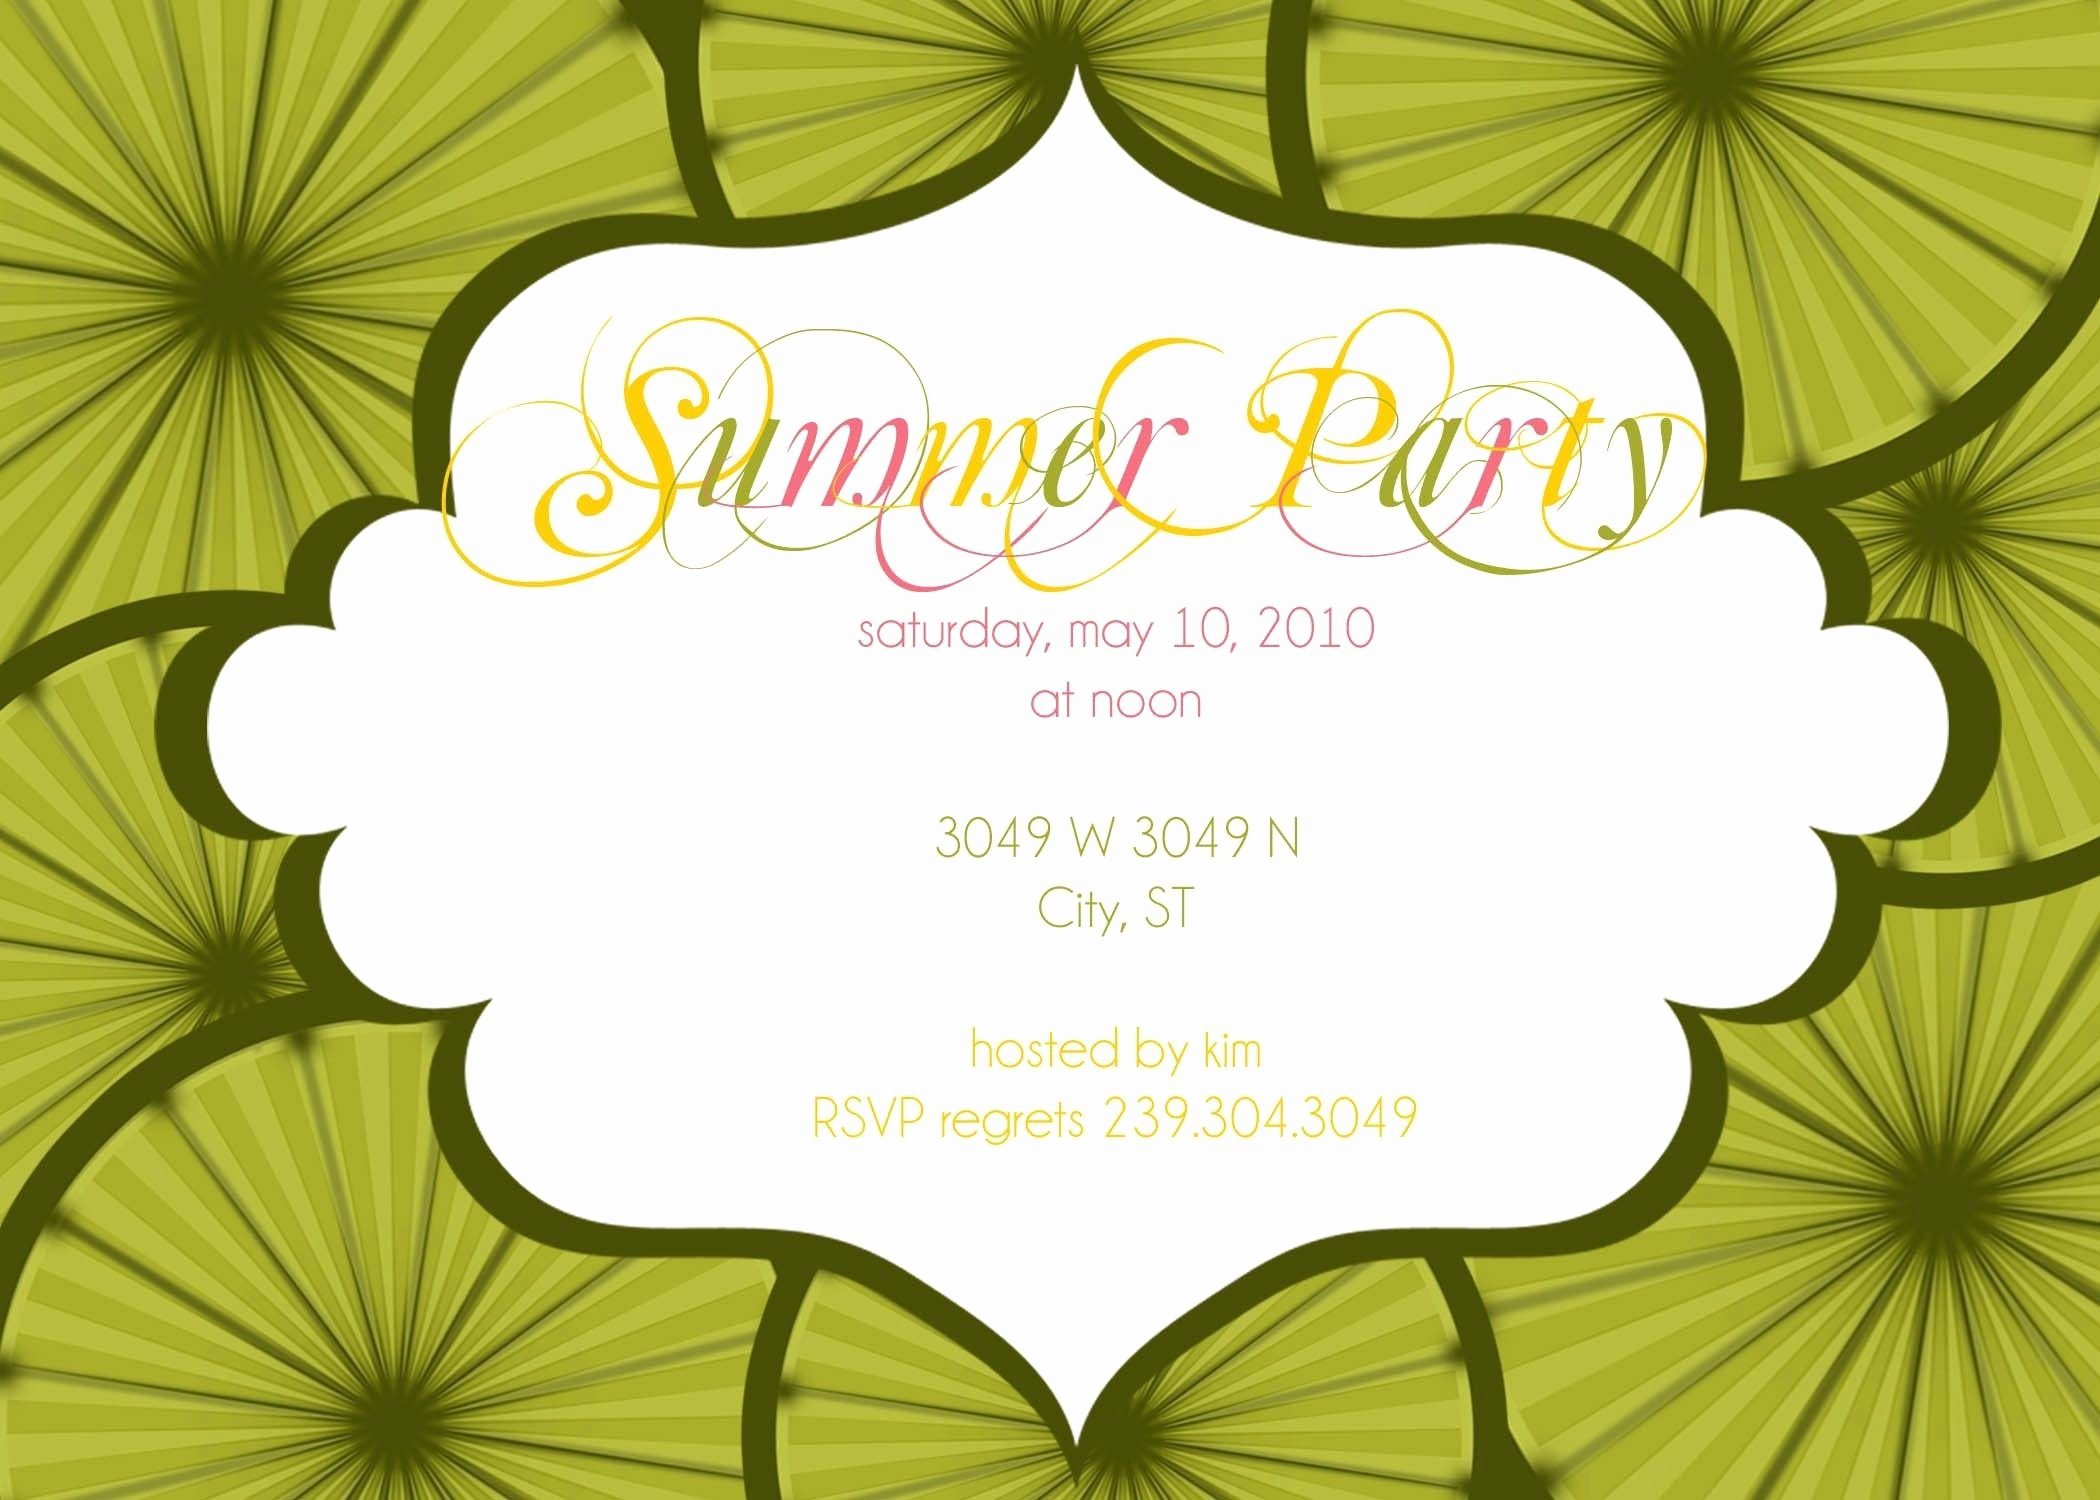 Summer Party Invitation Wording Unique Summer Party Invitation Wording Samples